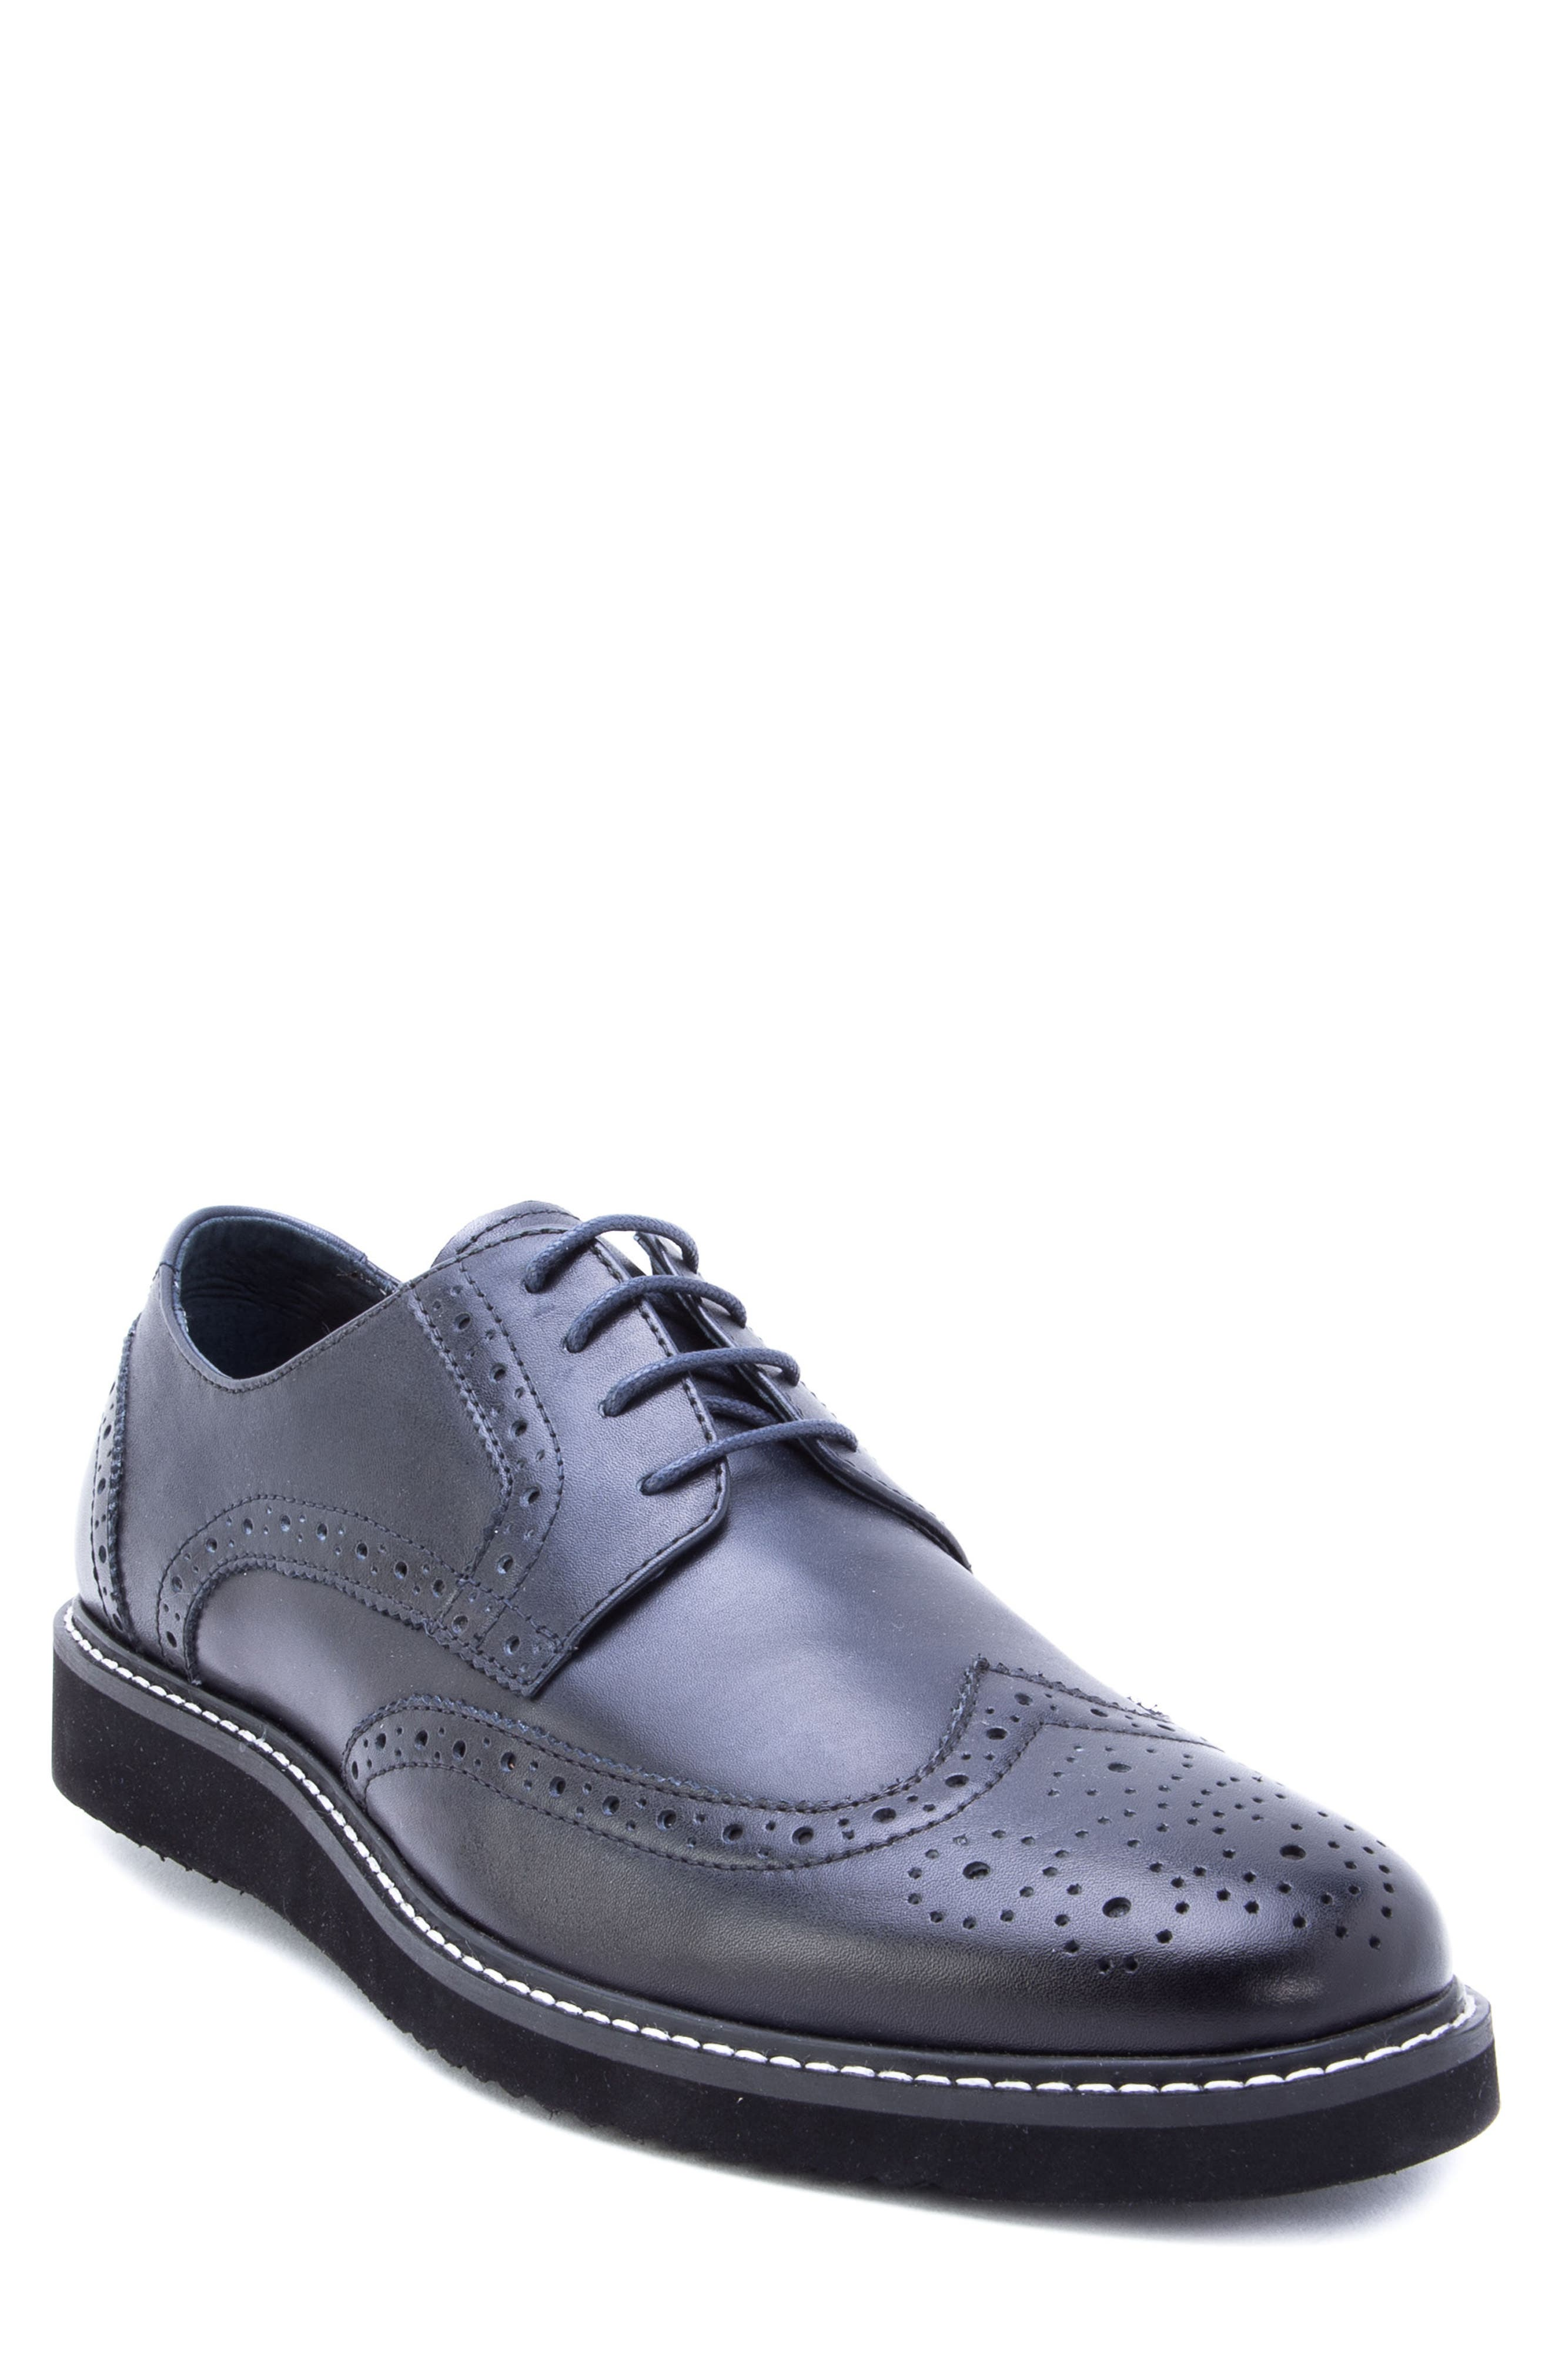 Siena Wingtip Derby,                         Main,                         color, NAVY LEATHER